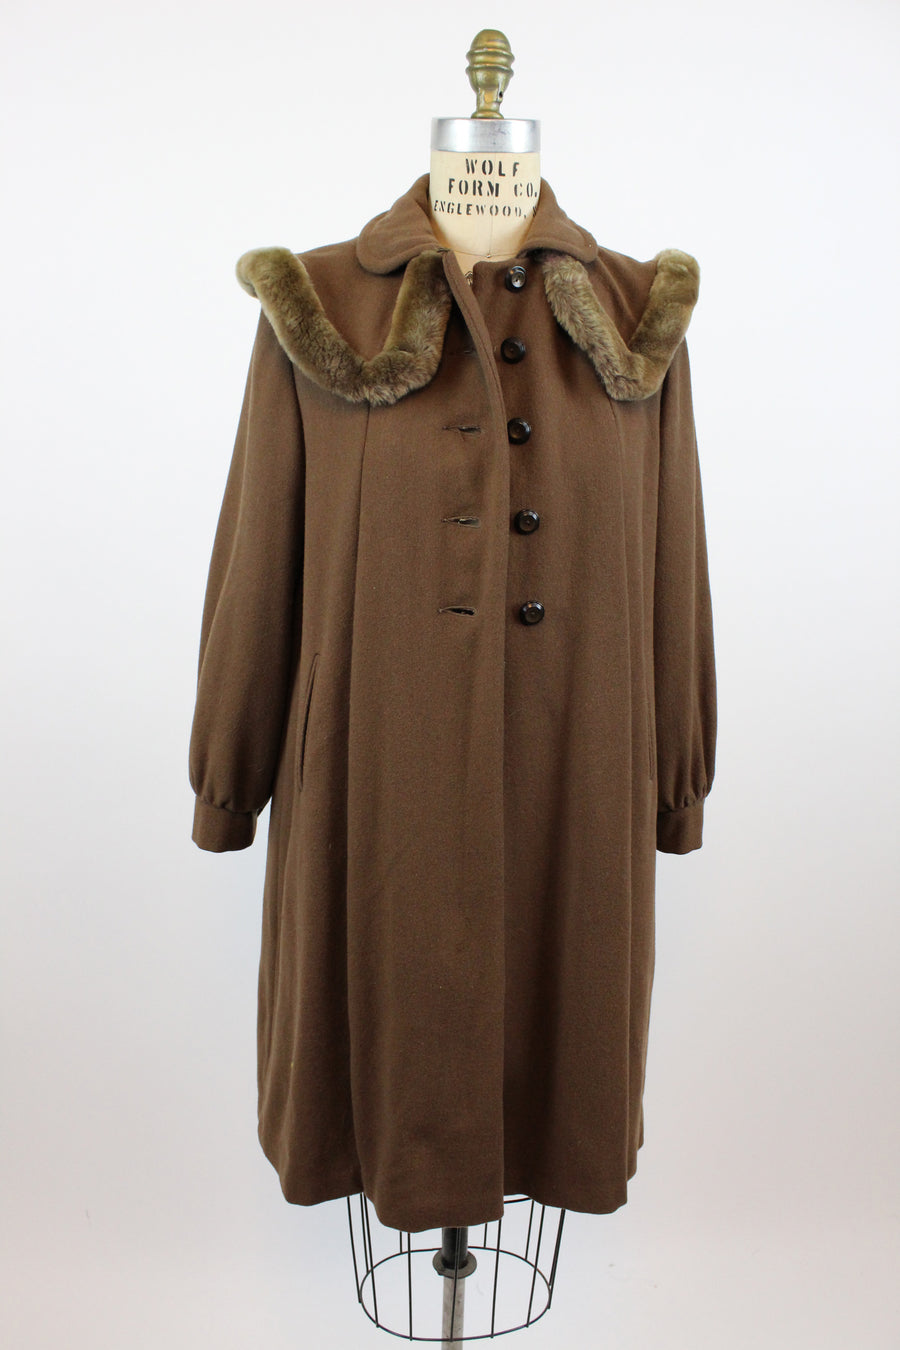 1940s cape collar coat small | vintage fur collar coat | new in